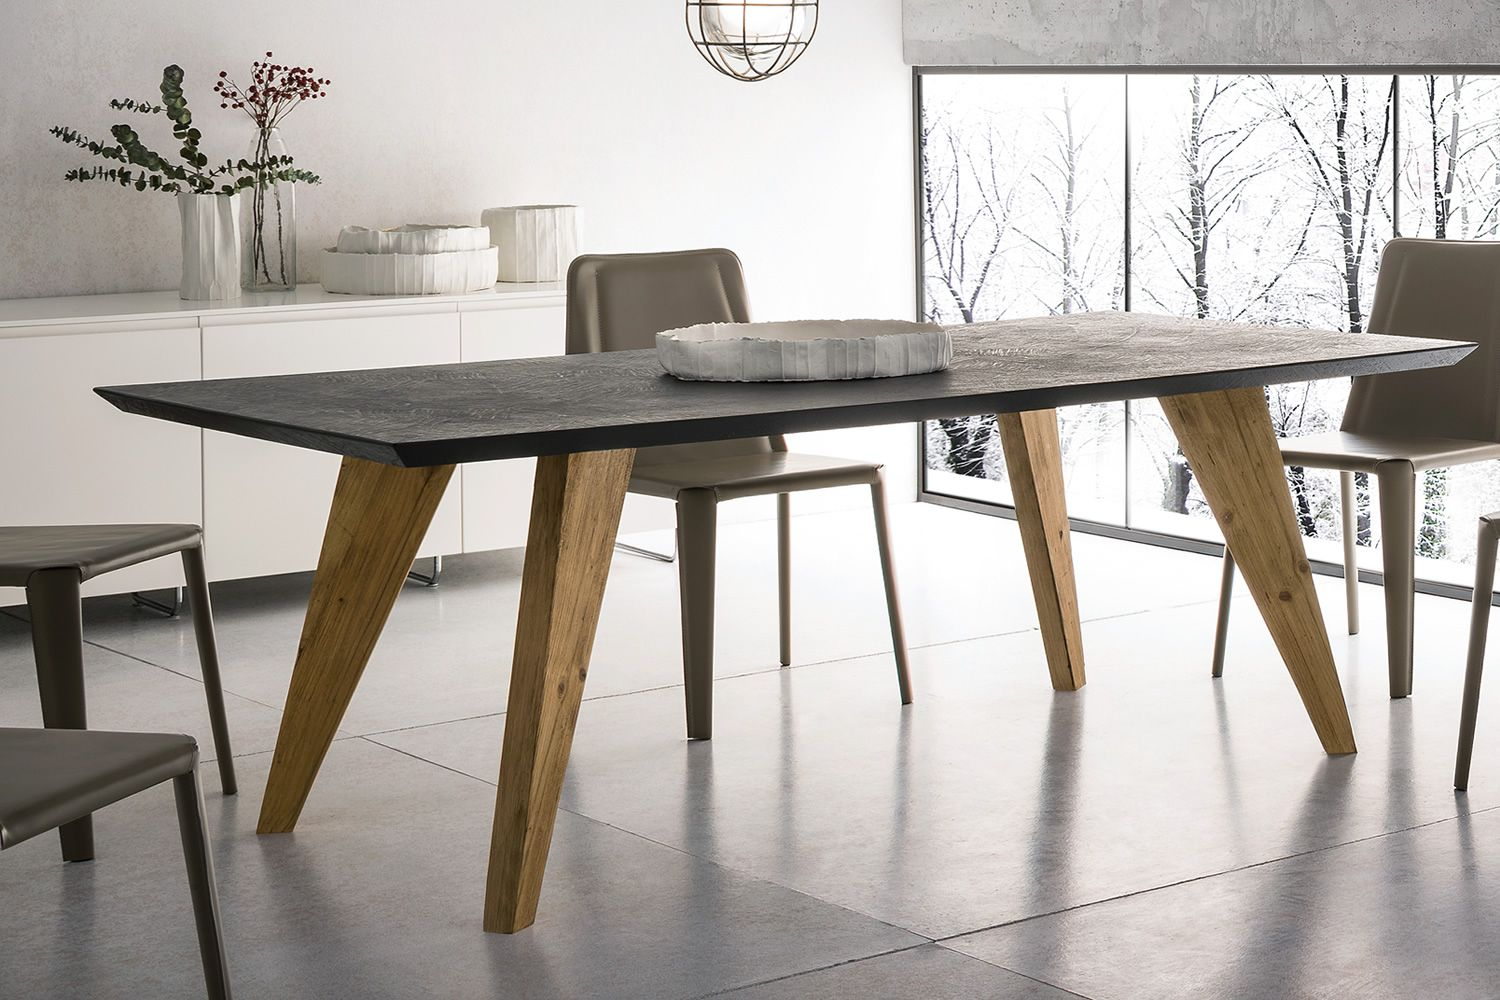 Artemidoro Design Wooden Table 160x90 Cm Fixed Top In